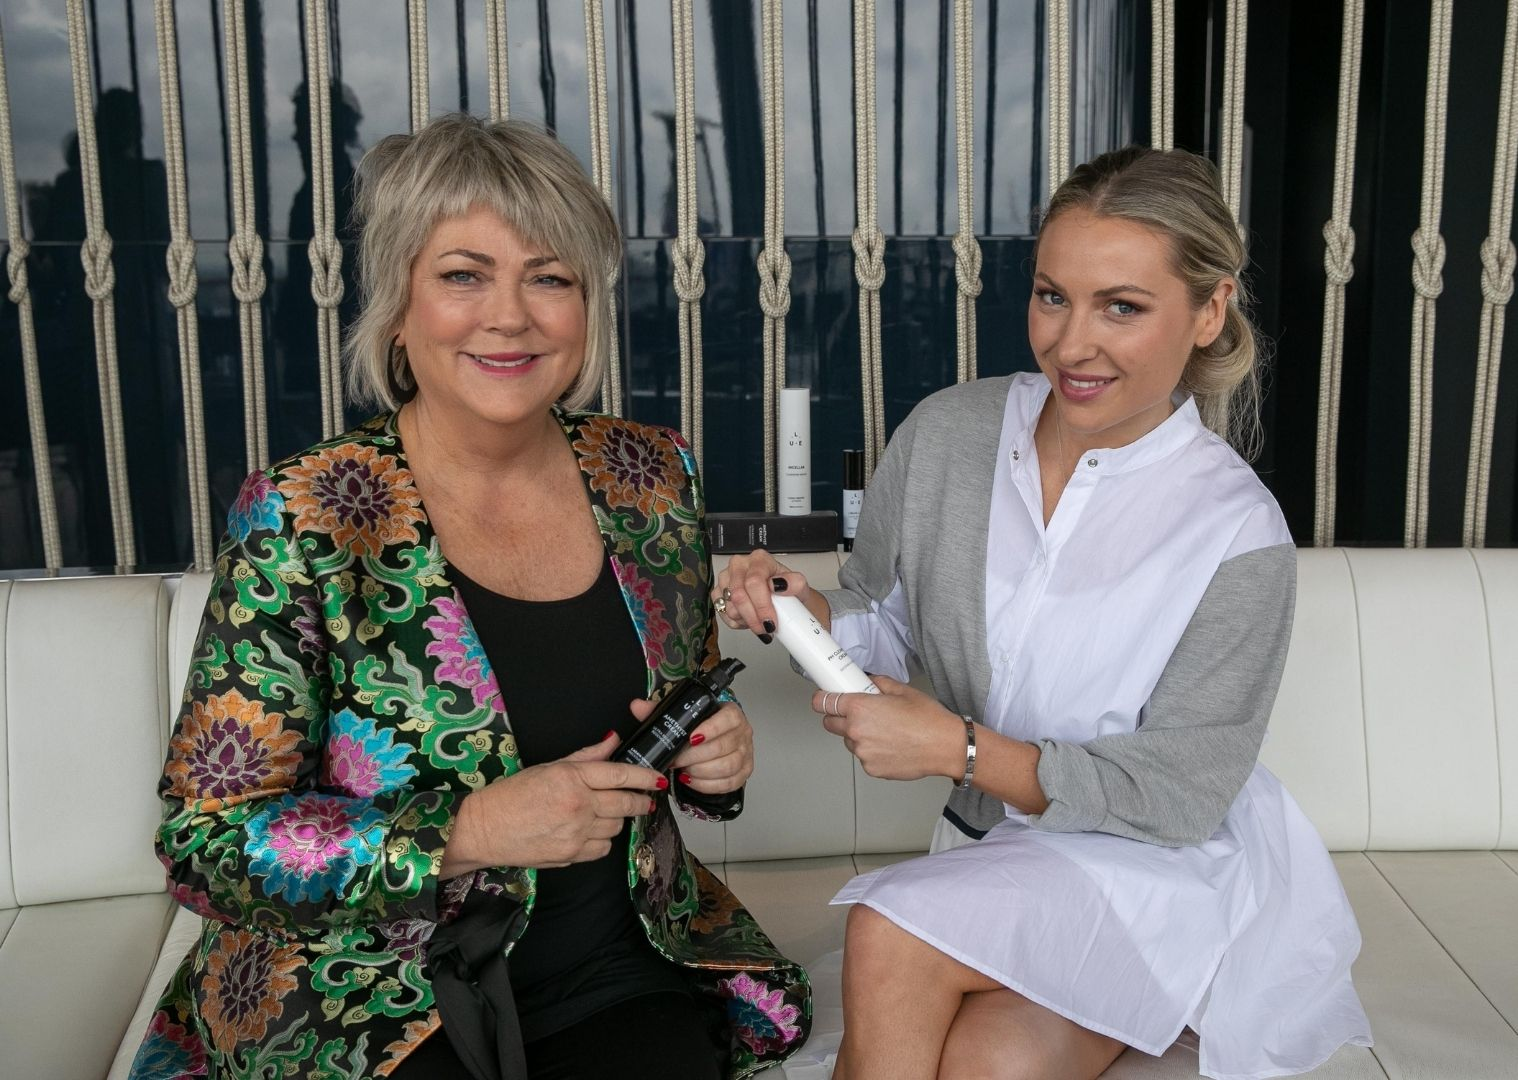 Jean and Kristen of LaGaia UNEDITED holding their beauty products